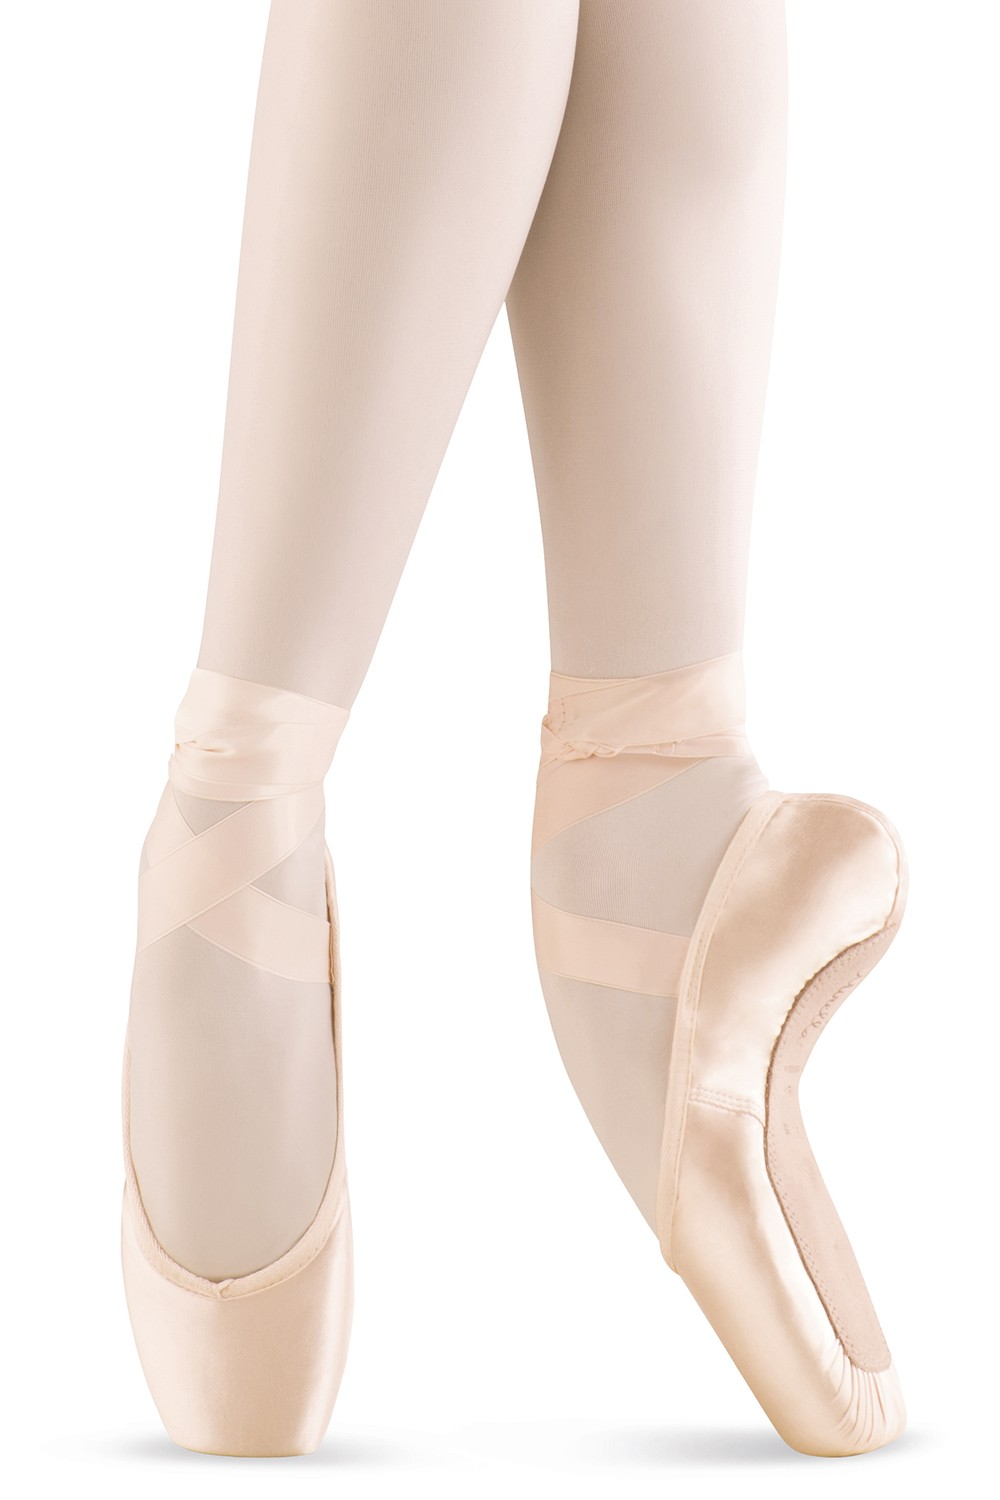 Academie Pointe Shoes